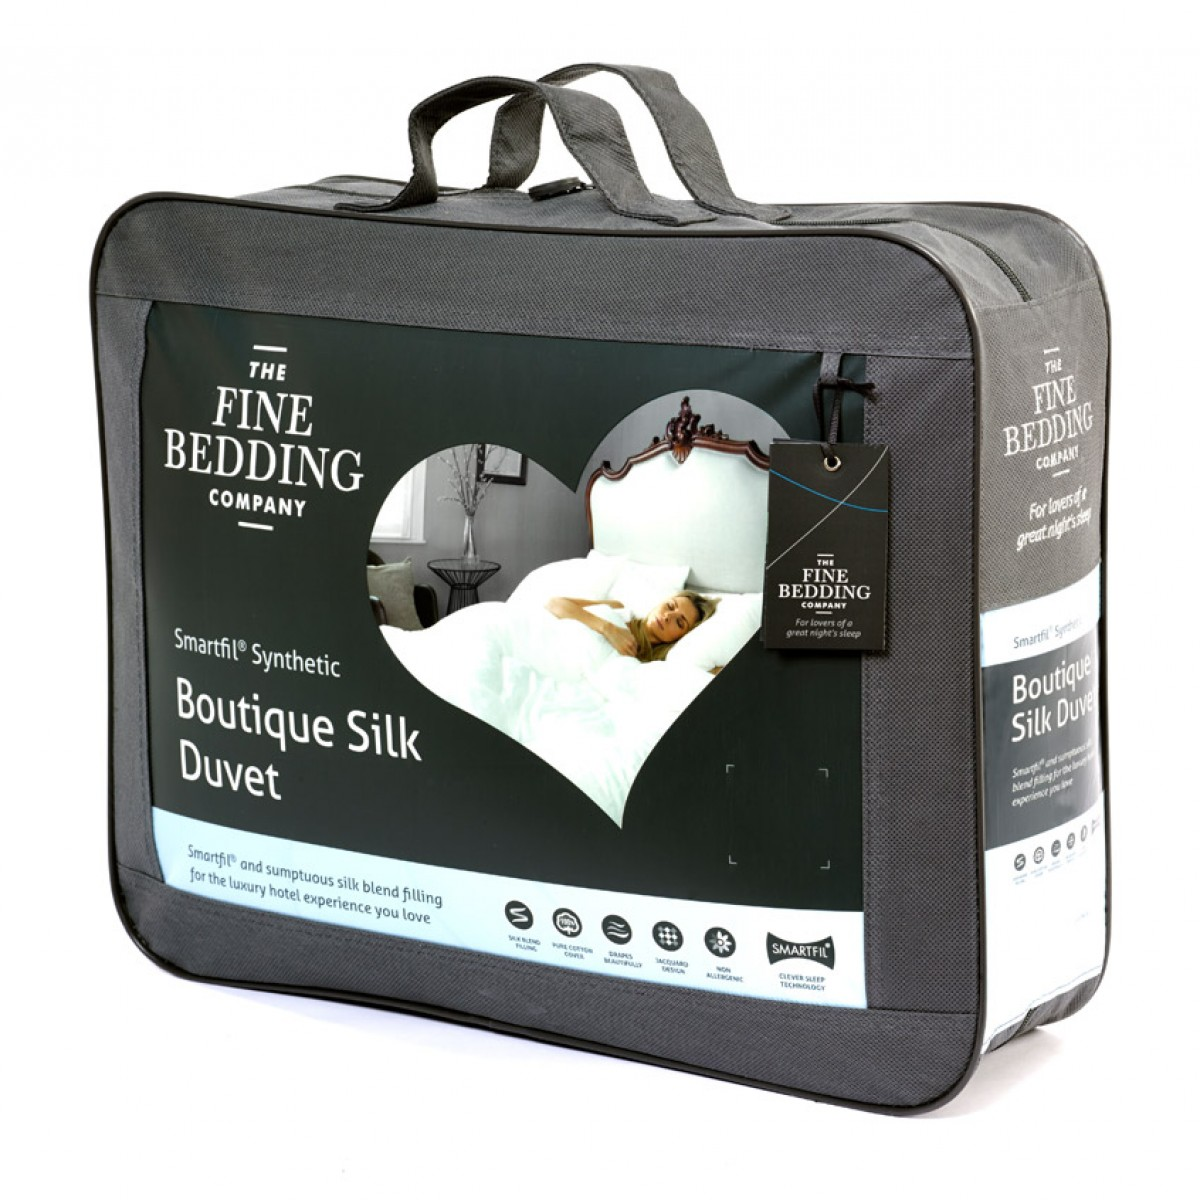 Fine Bedding Company Boutique Silk Duvet 10.5 Tog Hotel Quality Super King 4:33